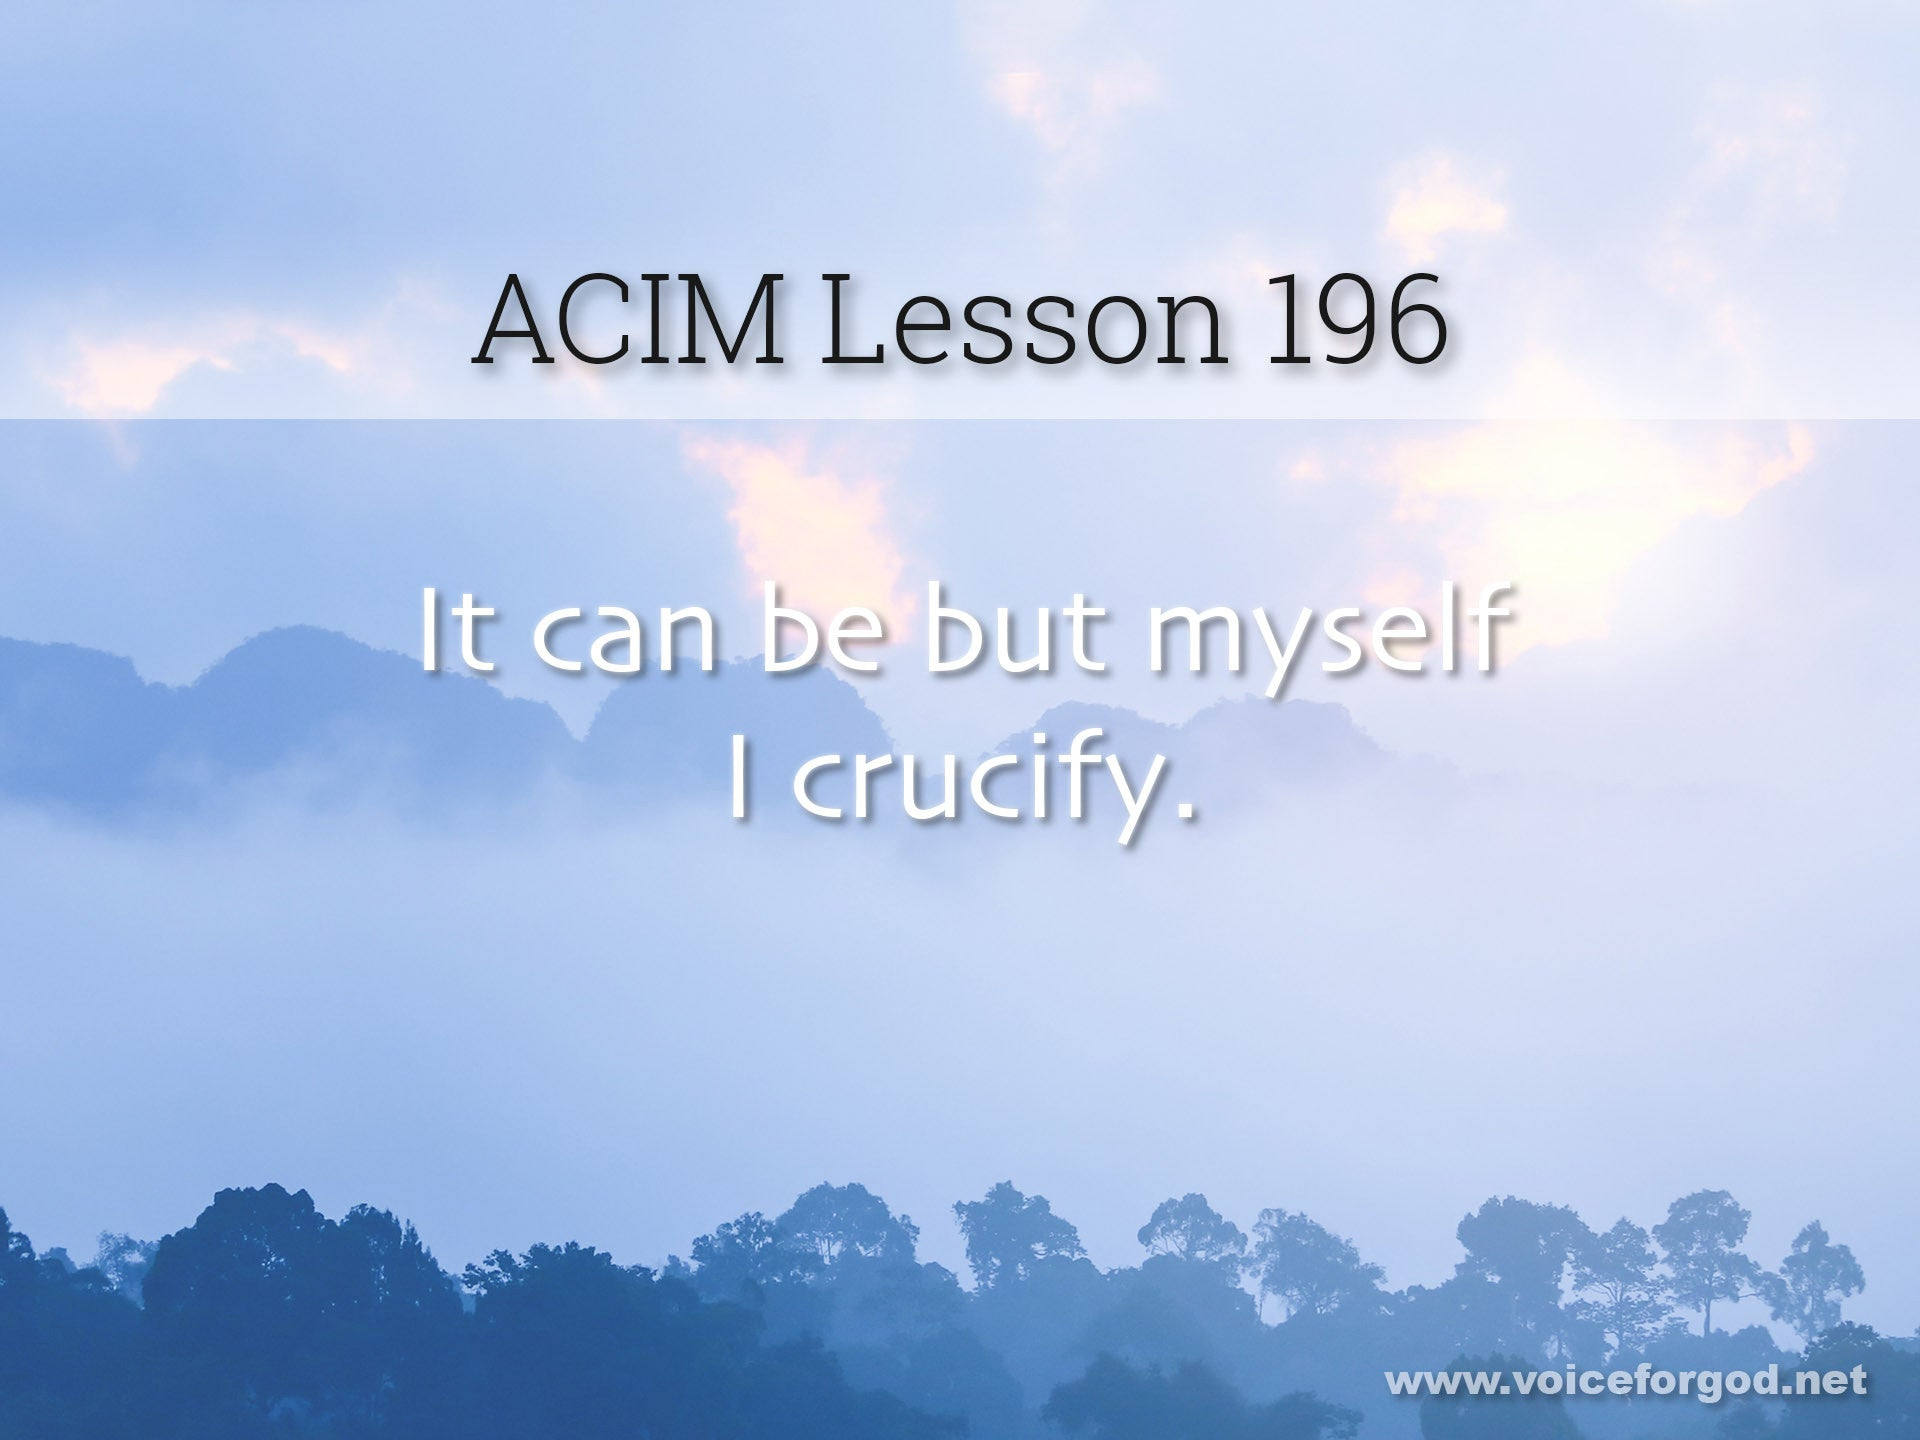 ACIM Lesson 196 - A Course in Miracles Workbook Lesson 196